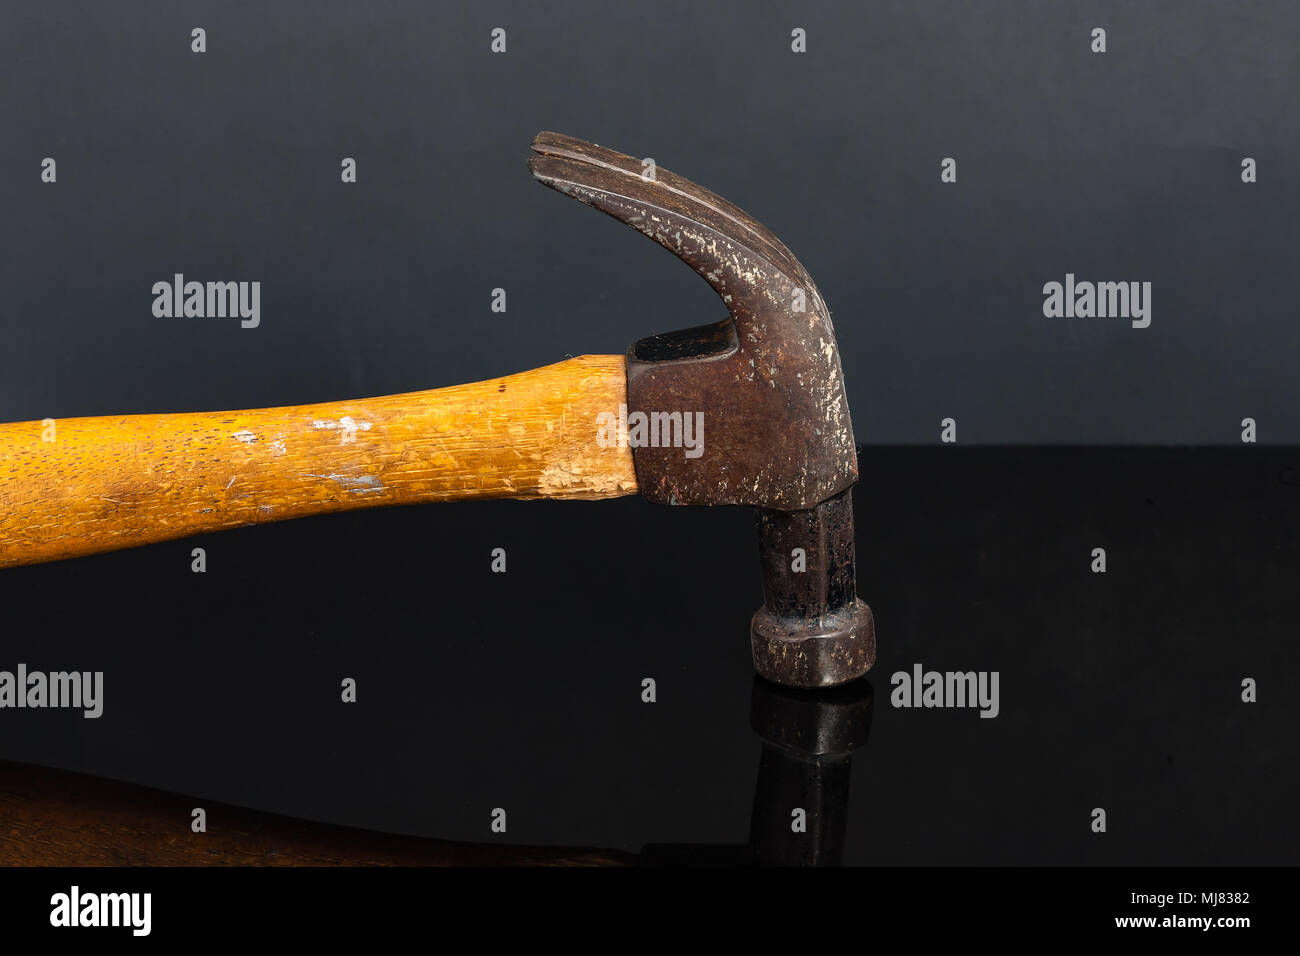 an old and heavily used carpenters claw hammer - Stock Image